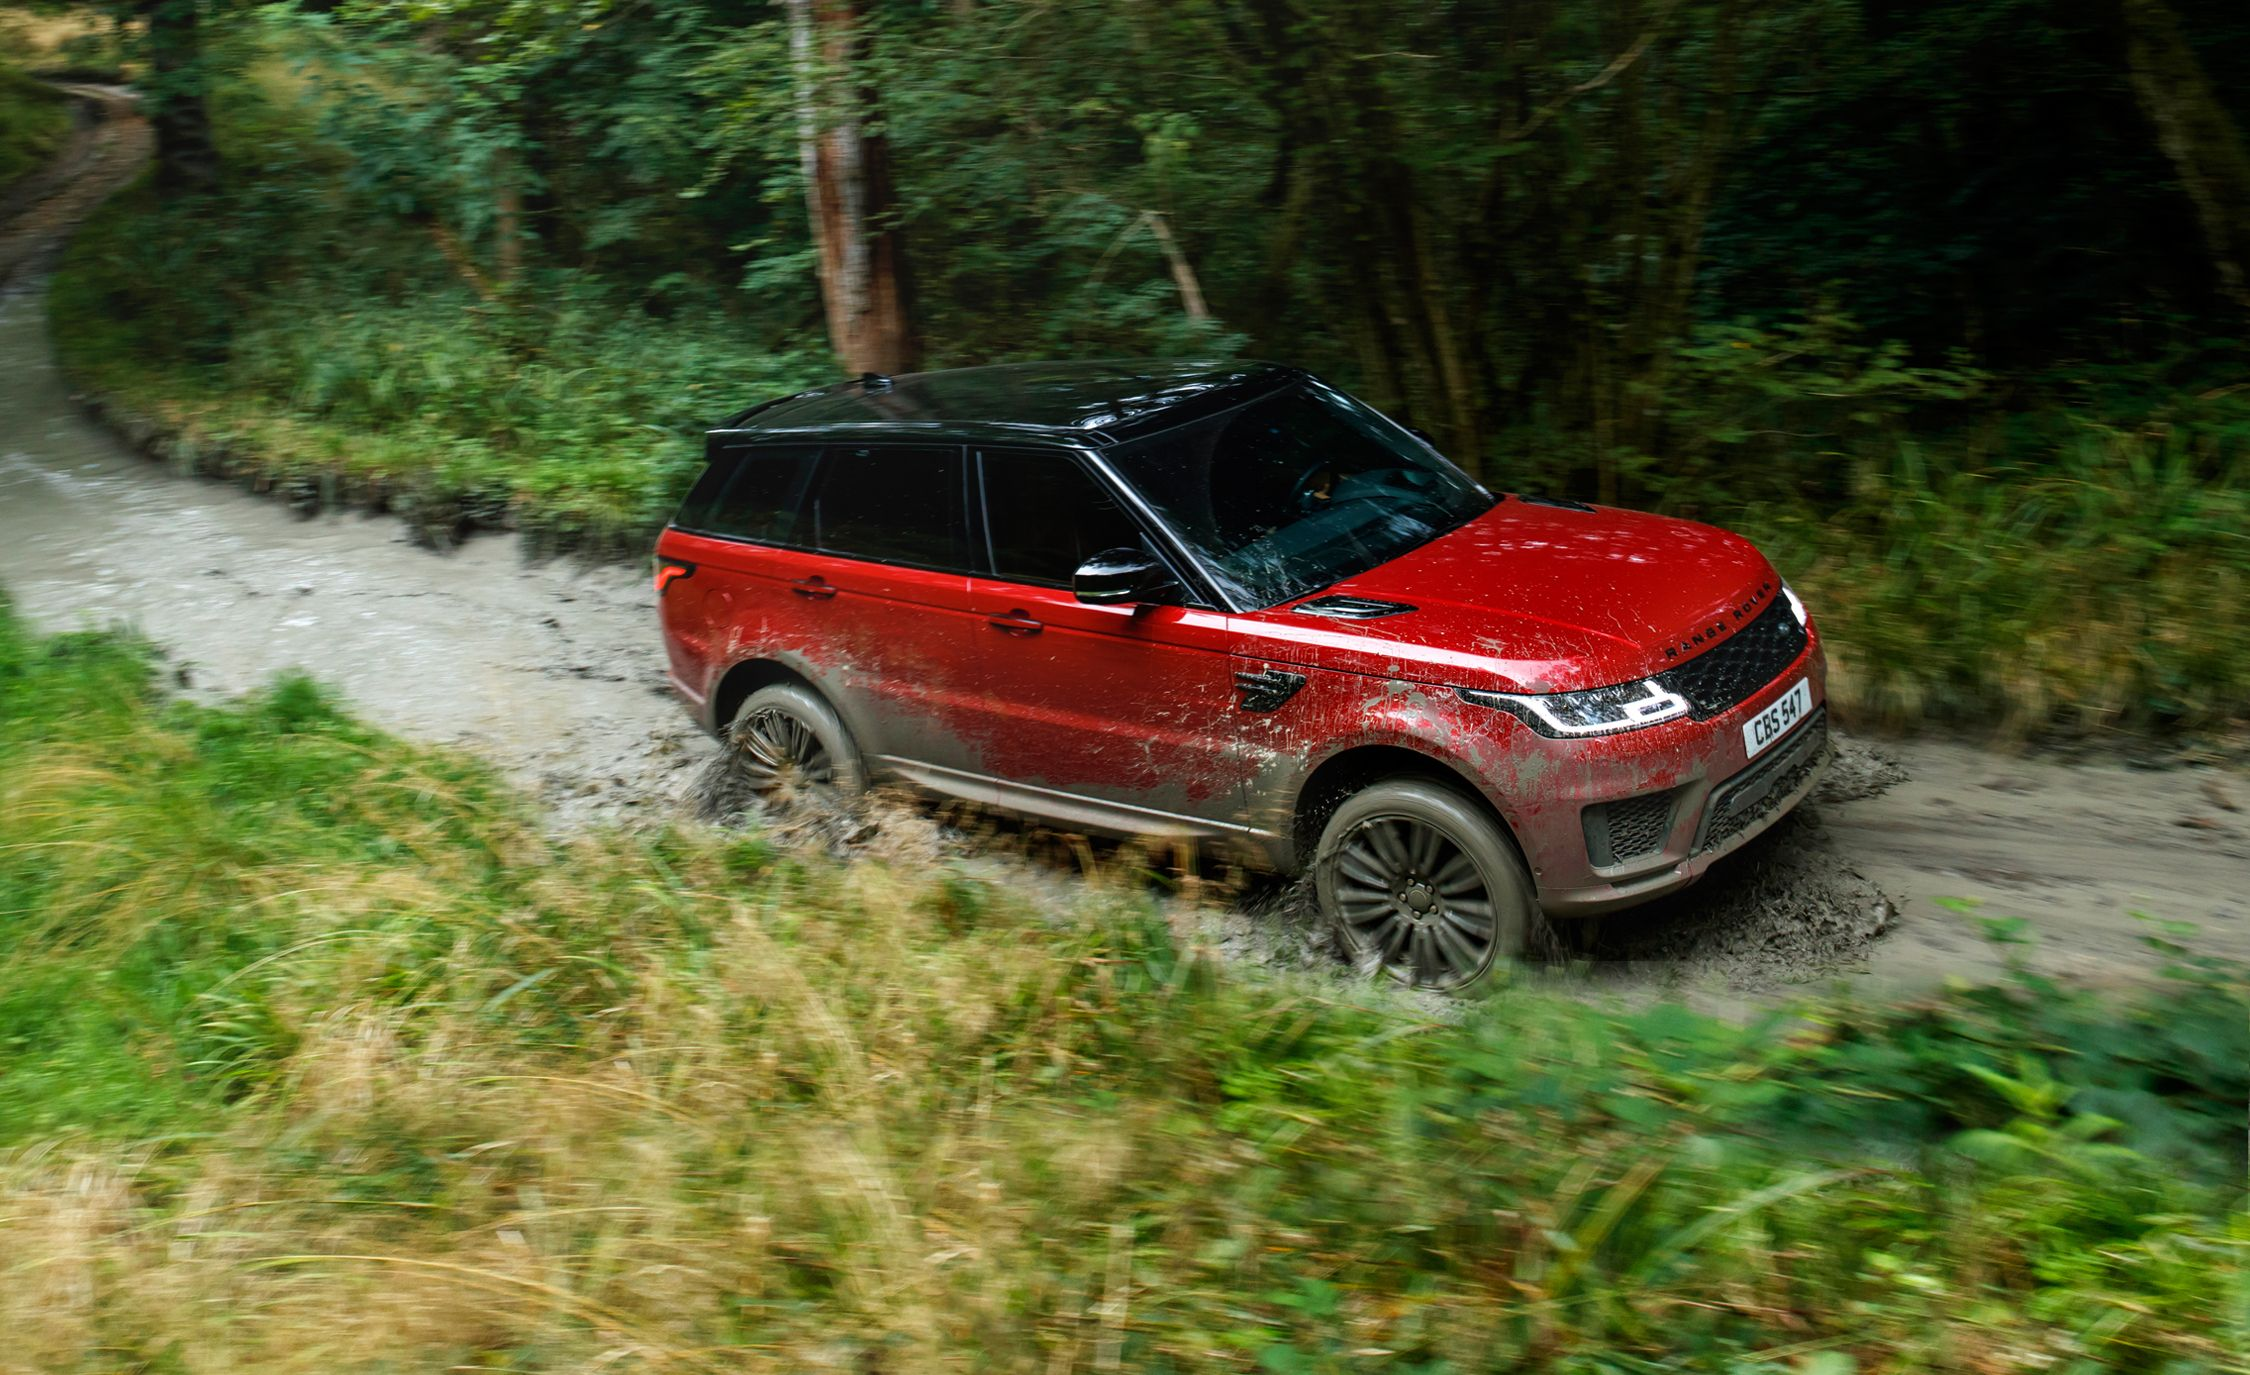 2018 Range Rover Sport Photos and Info | News | Car and Driver